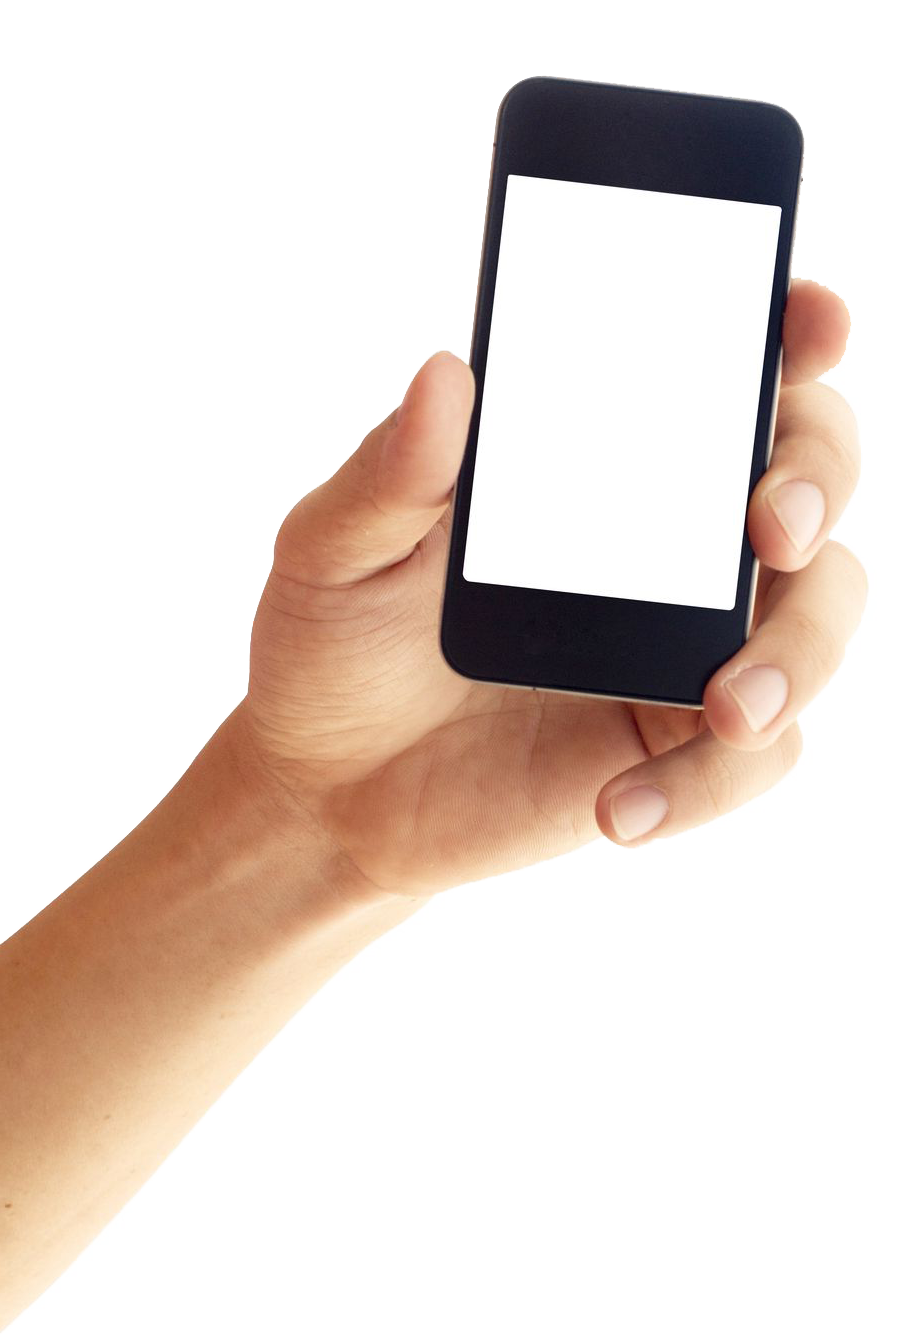 Hands clipart smartphone. In hand png image